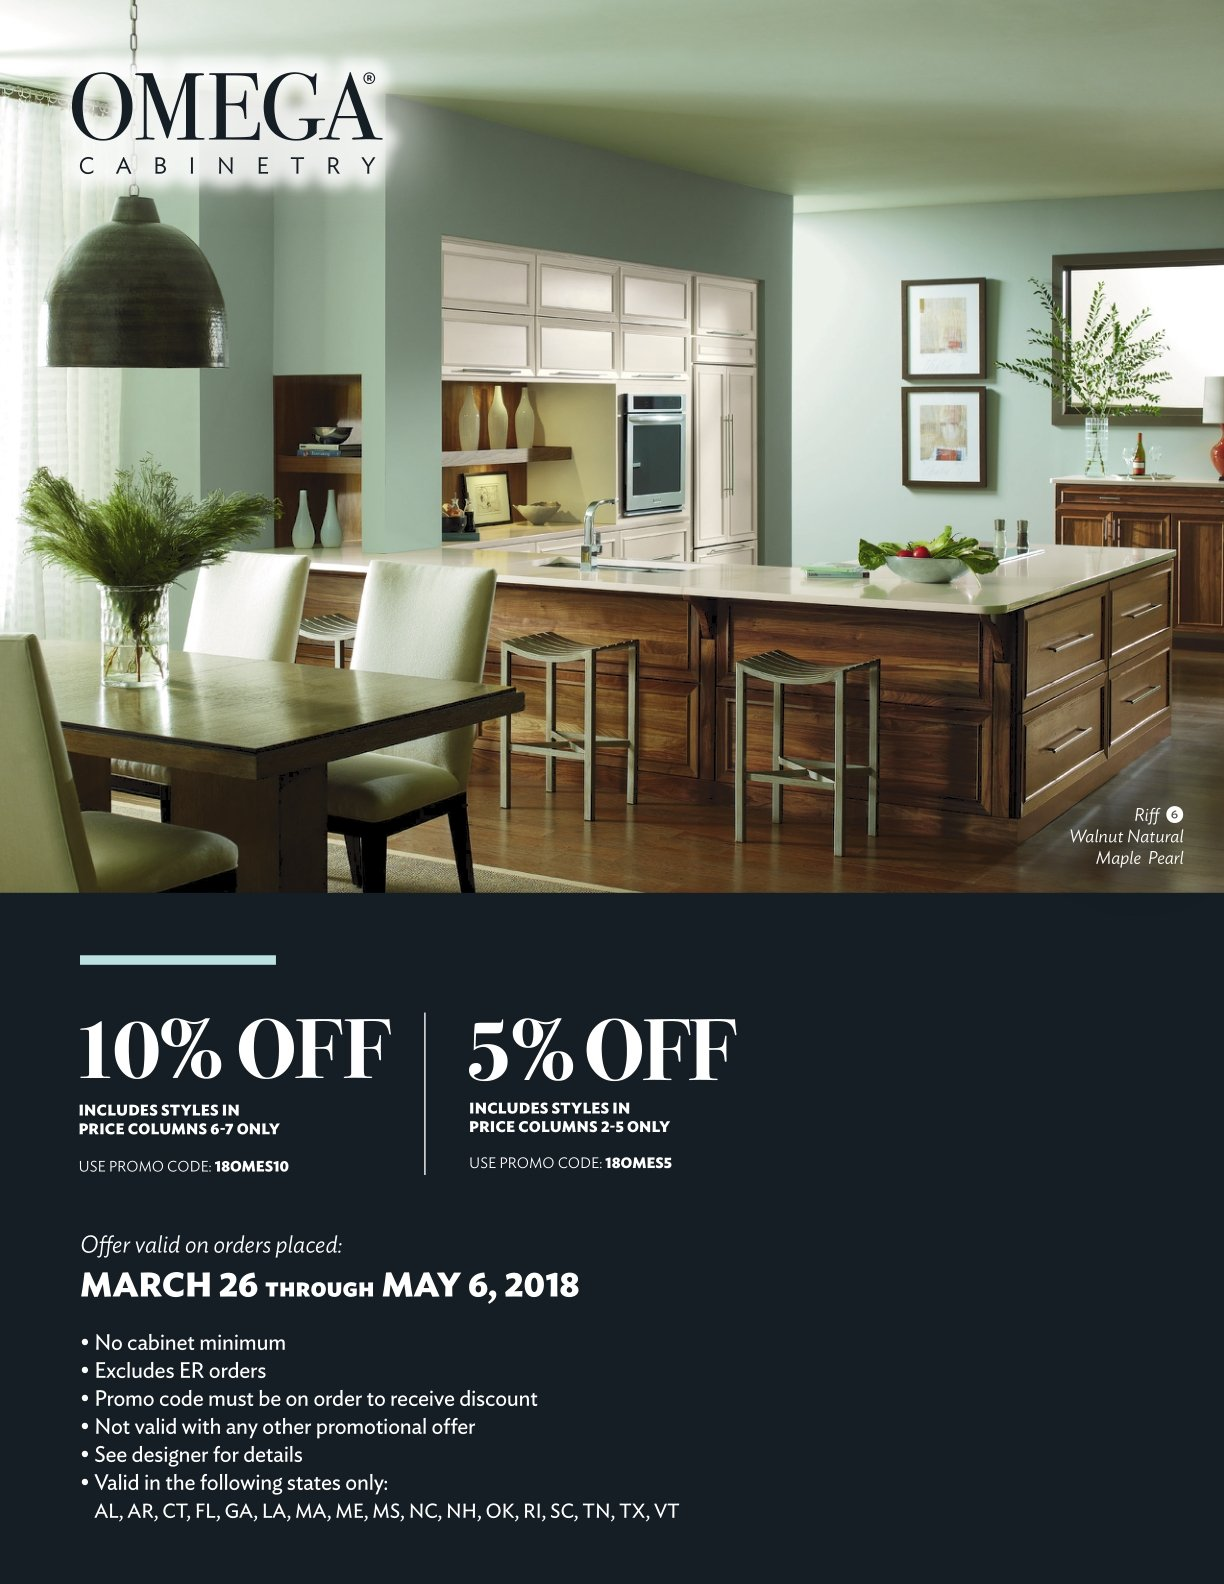 Omega Cabinetry\'s Spring Savings